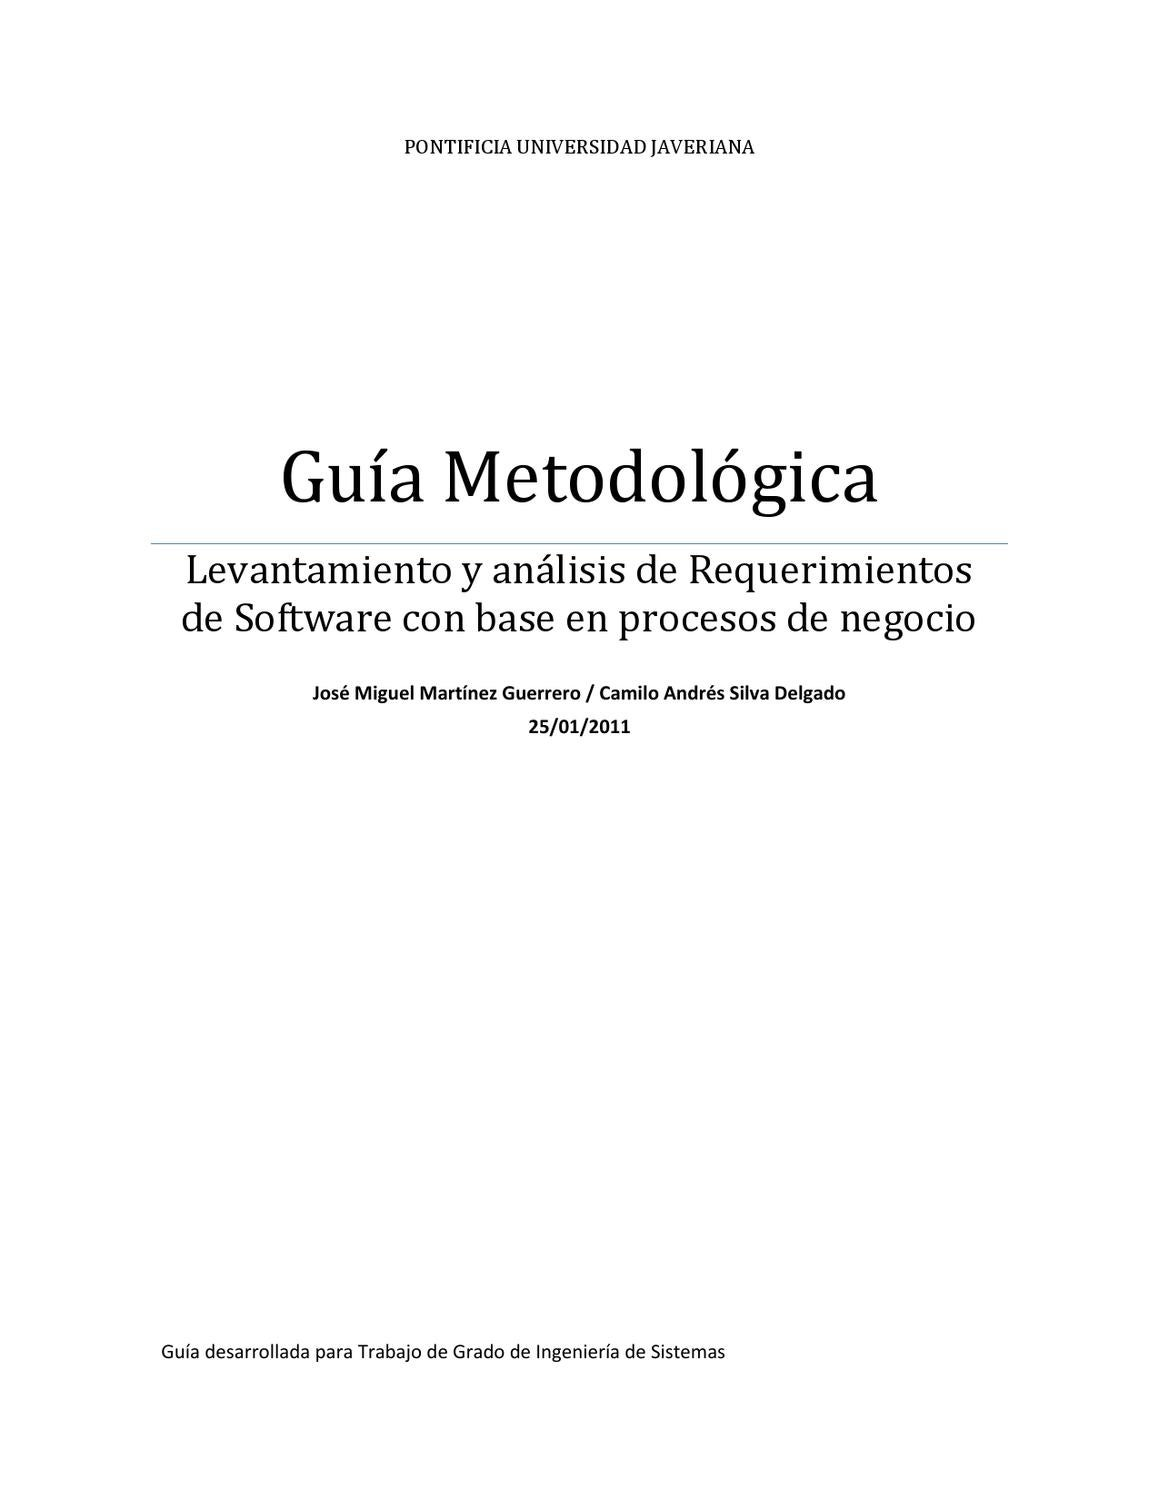 Levantamiento y análisi de requerimientos by Julian David Ramos - issuu